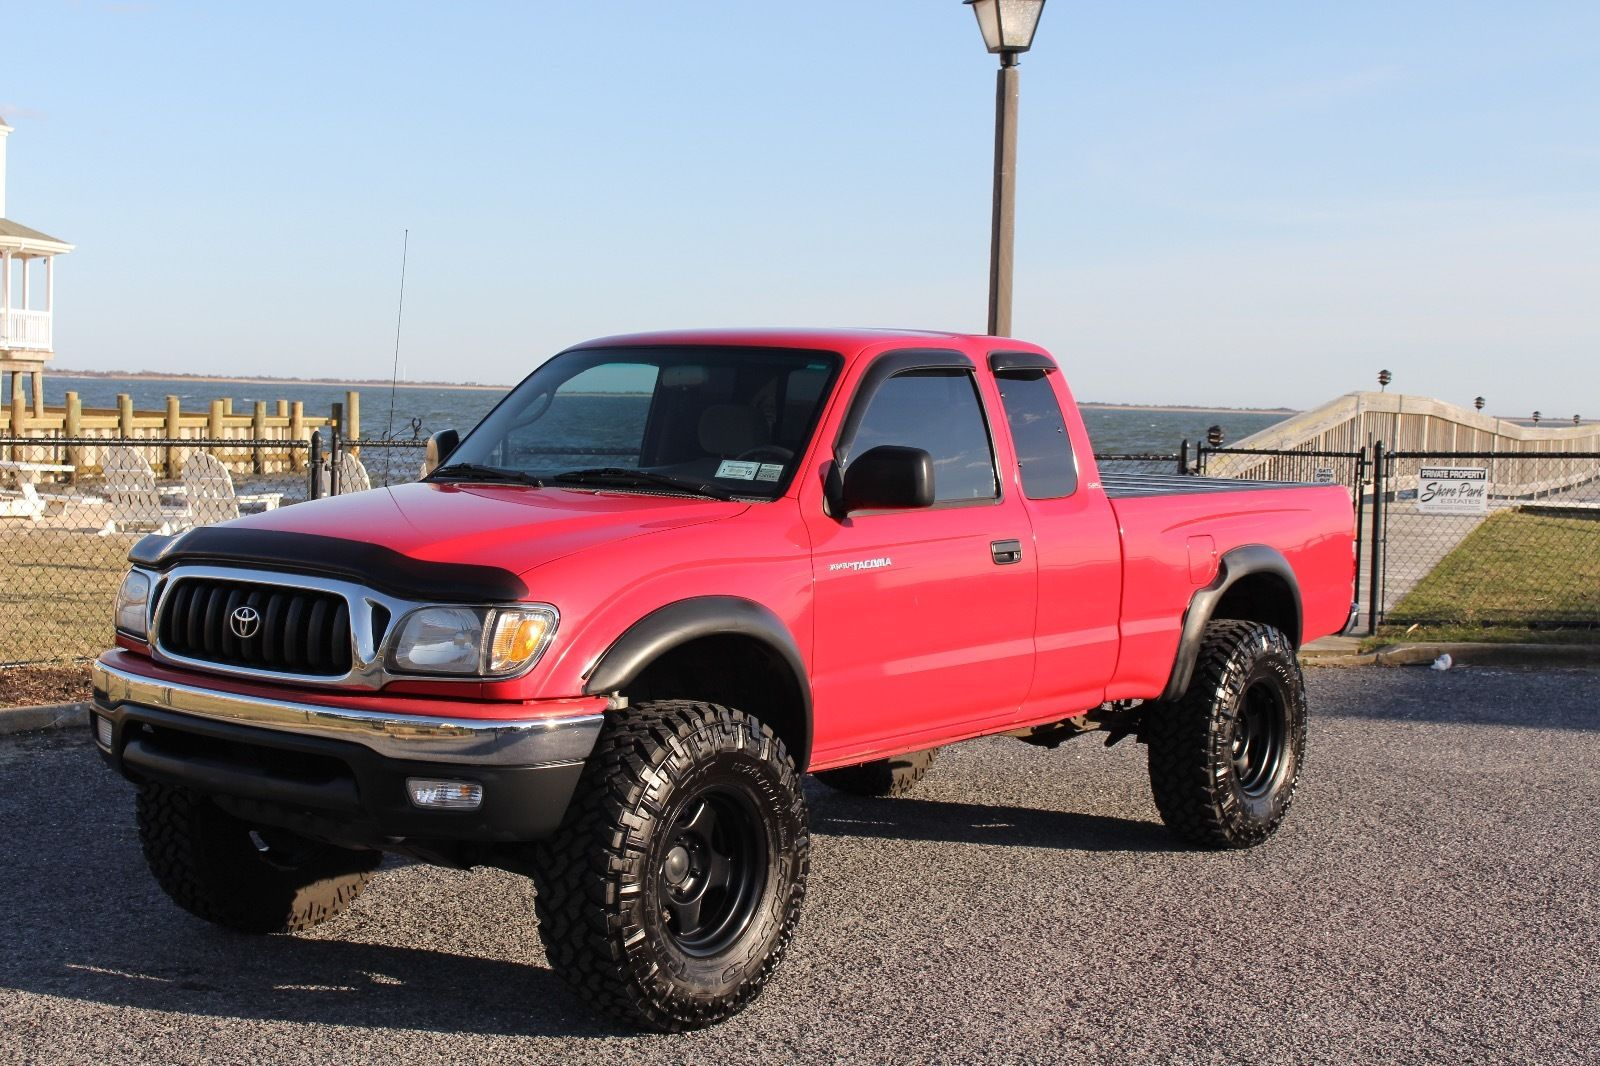 lots of extras 2001 toyota tacoma sr5 lifted truck for sale. Black Bedroom Furniture Sets. Home Design Ideas